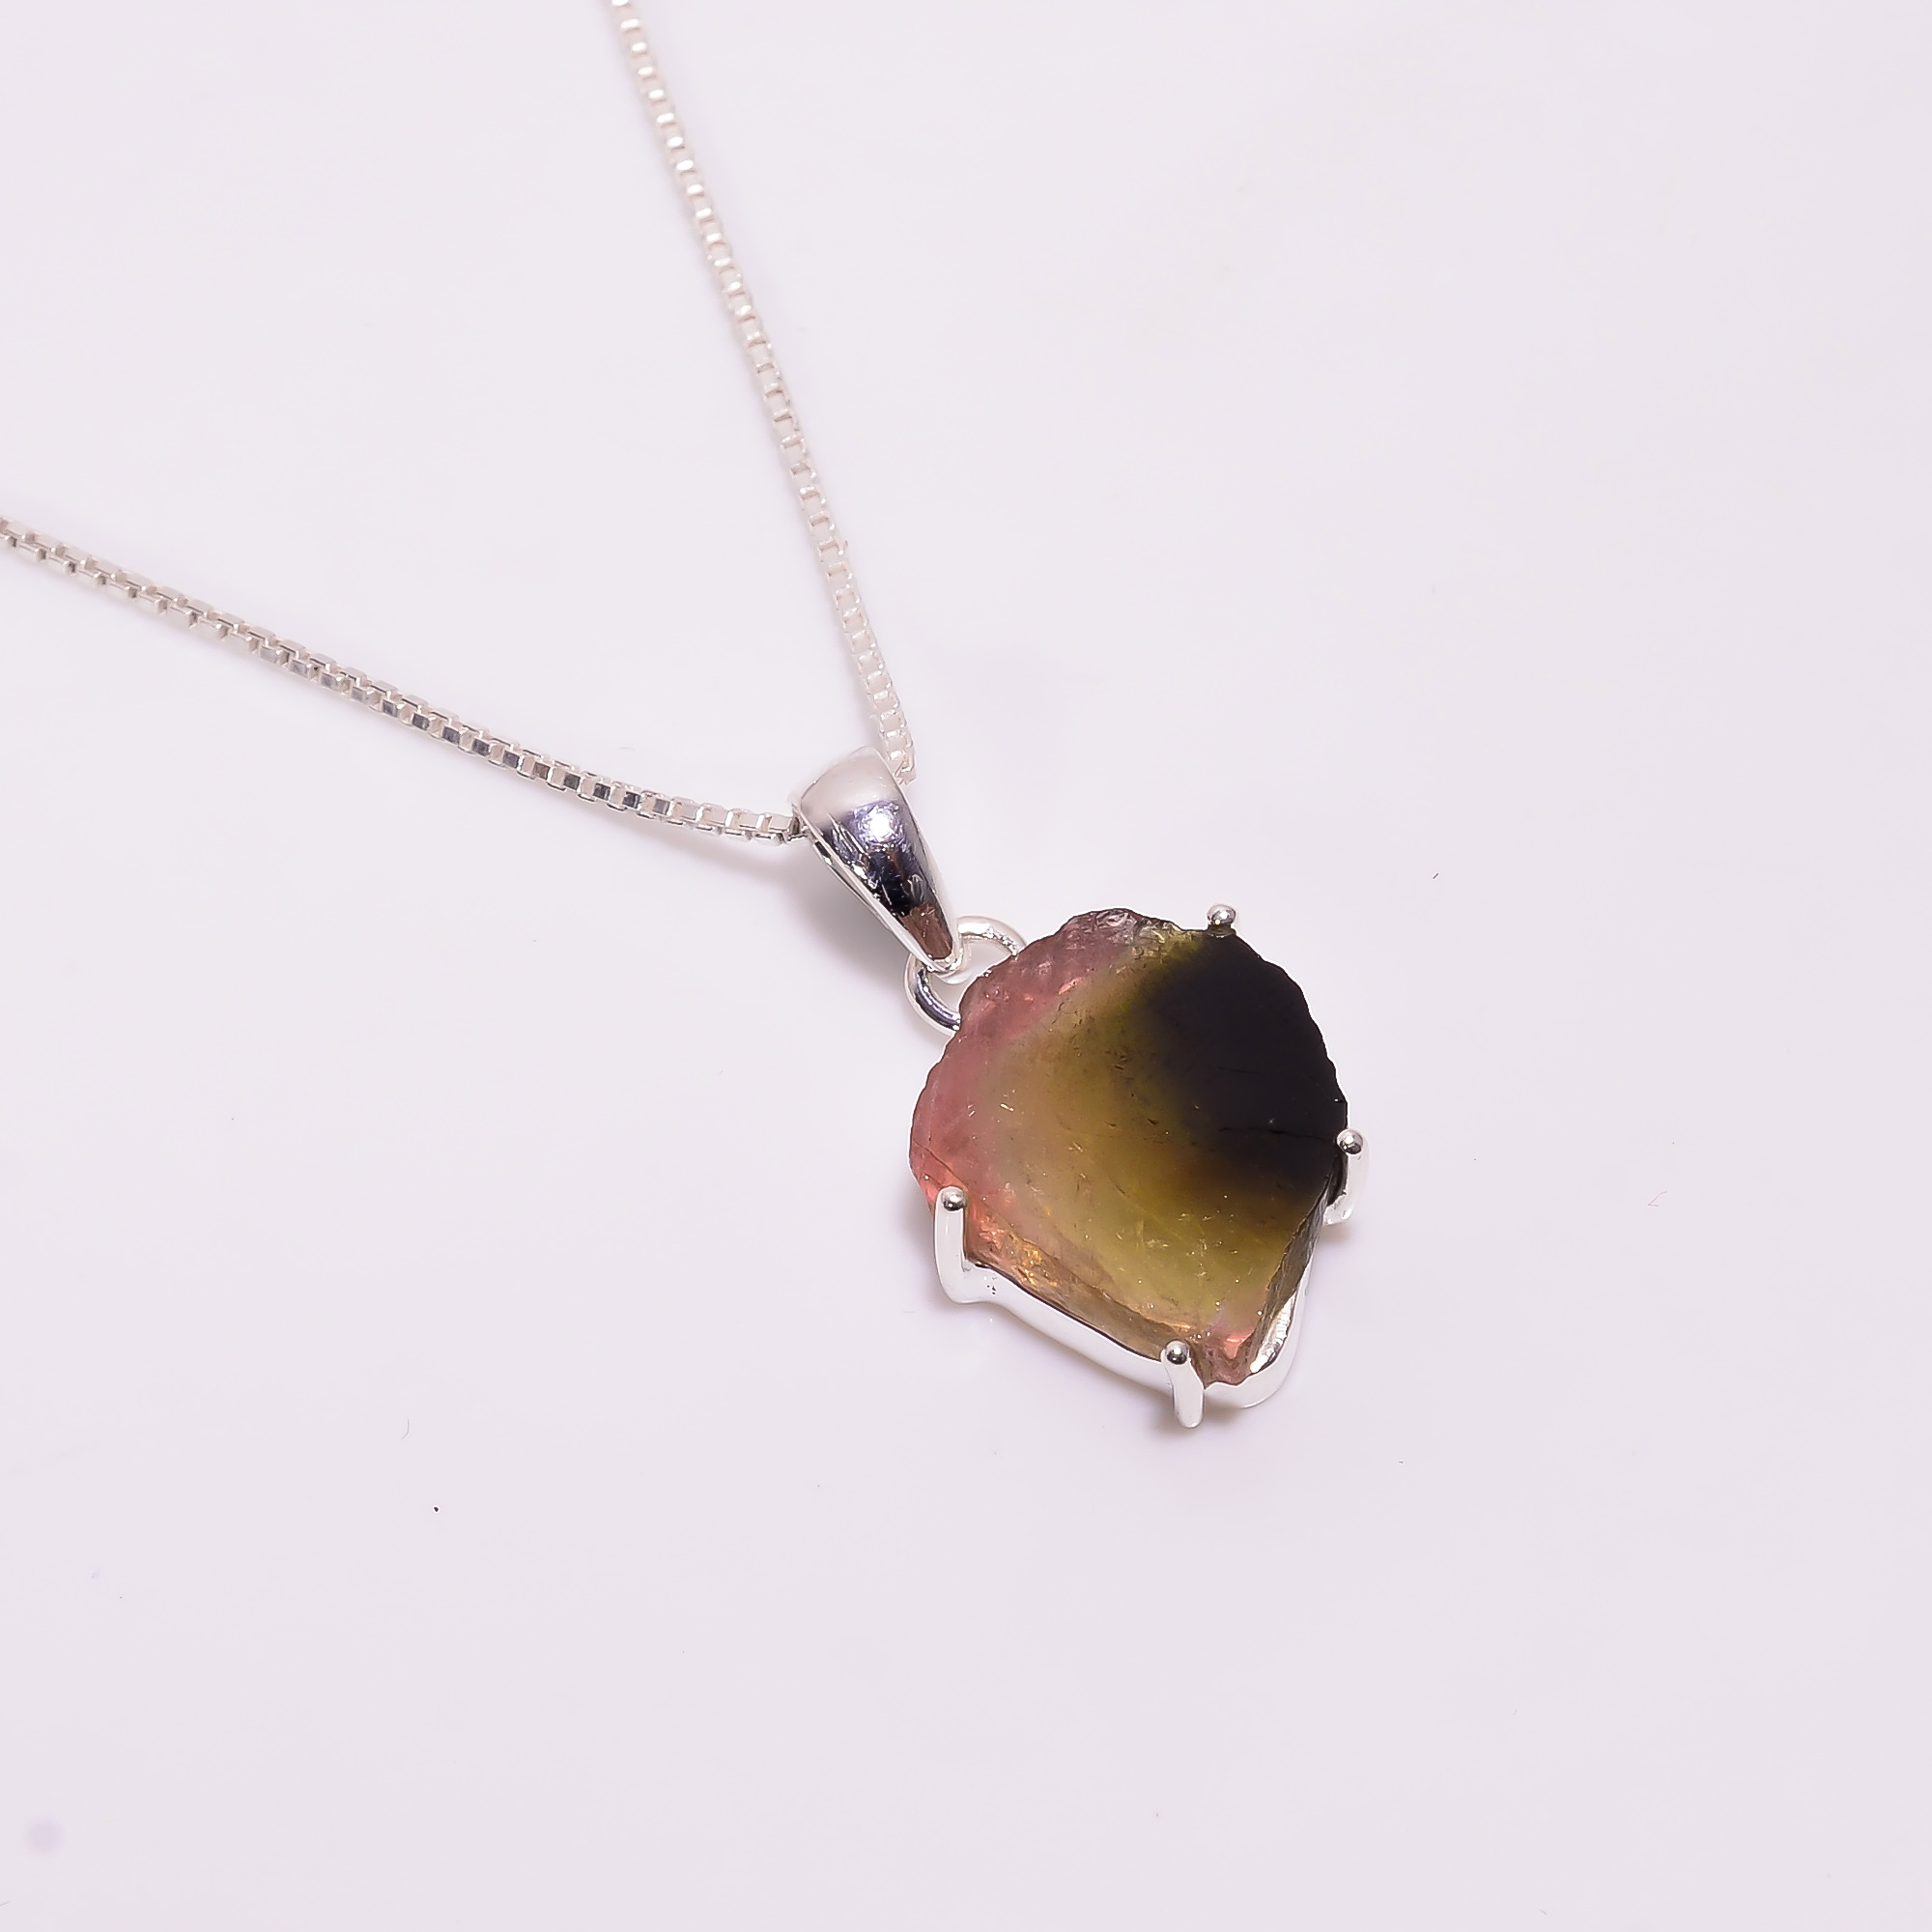 Watermelon Tourmaline Raw Gemstone 925 Sterling Silver Necklace